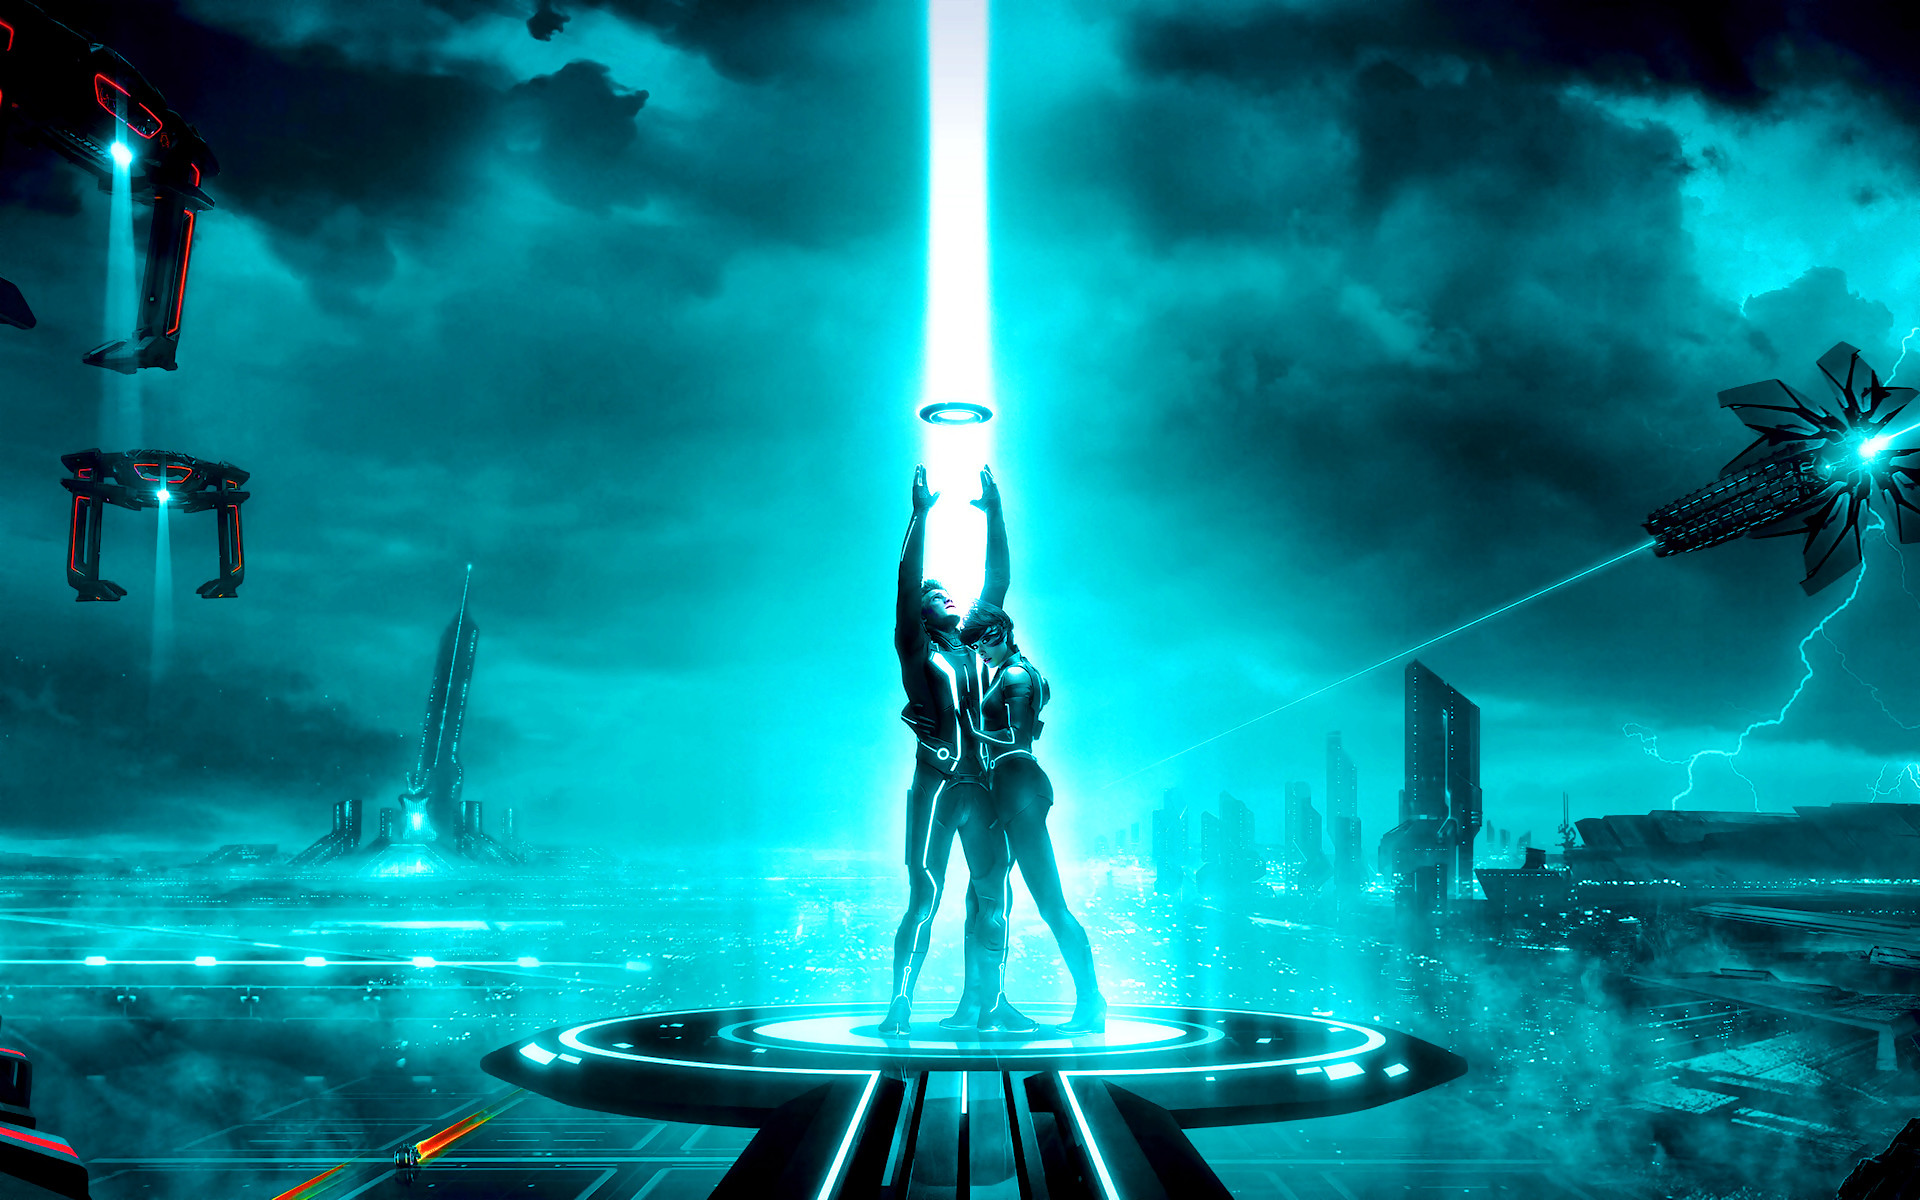 Tron background 74 images - Legacy wallpaper ...